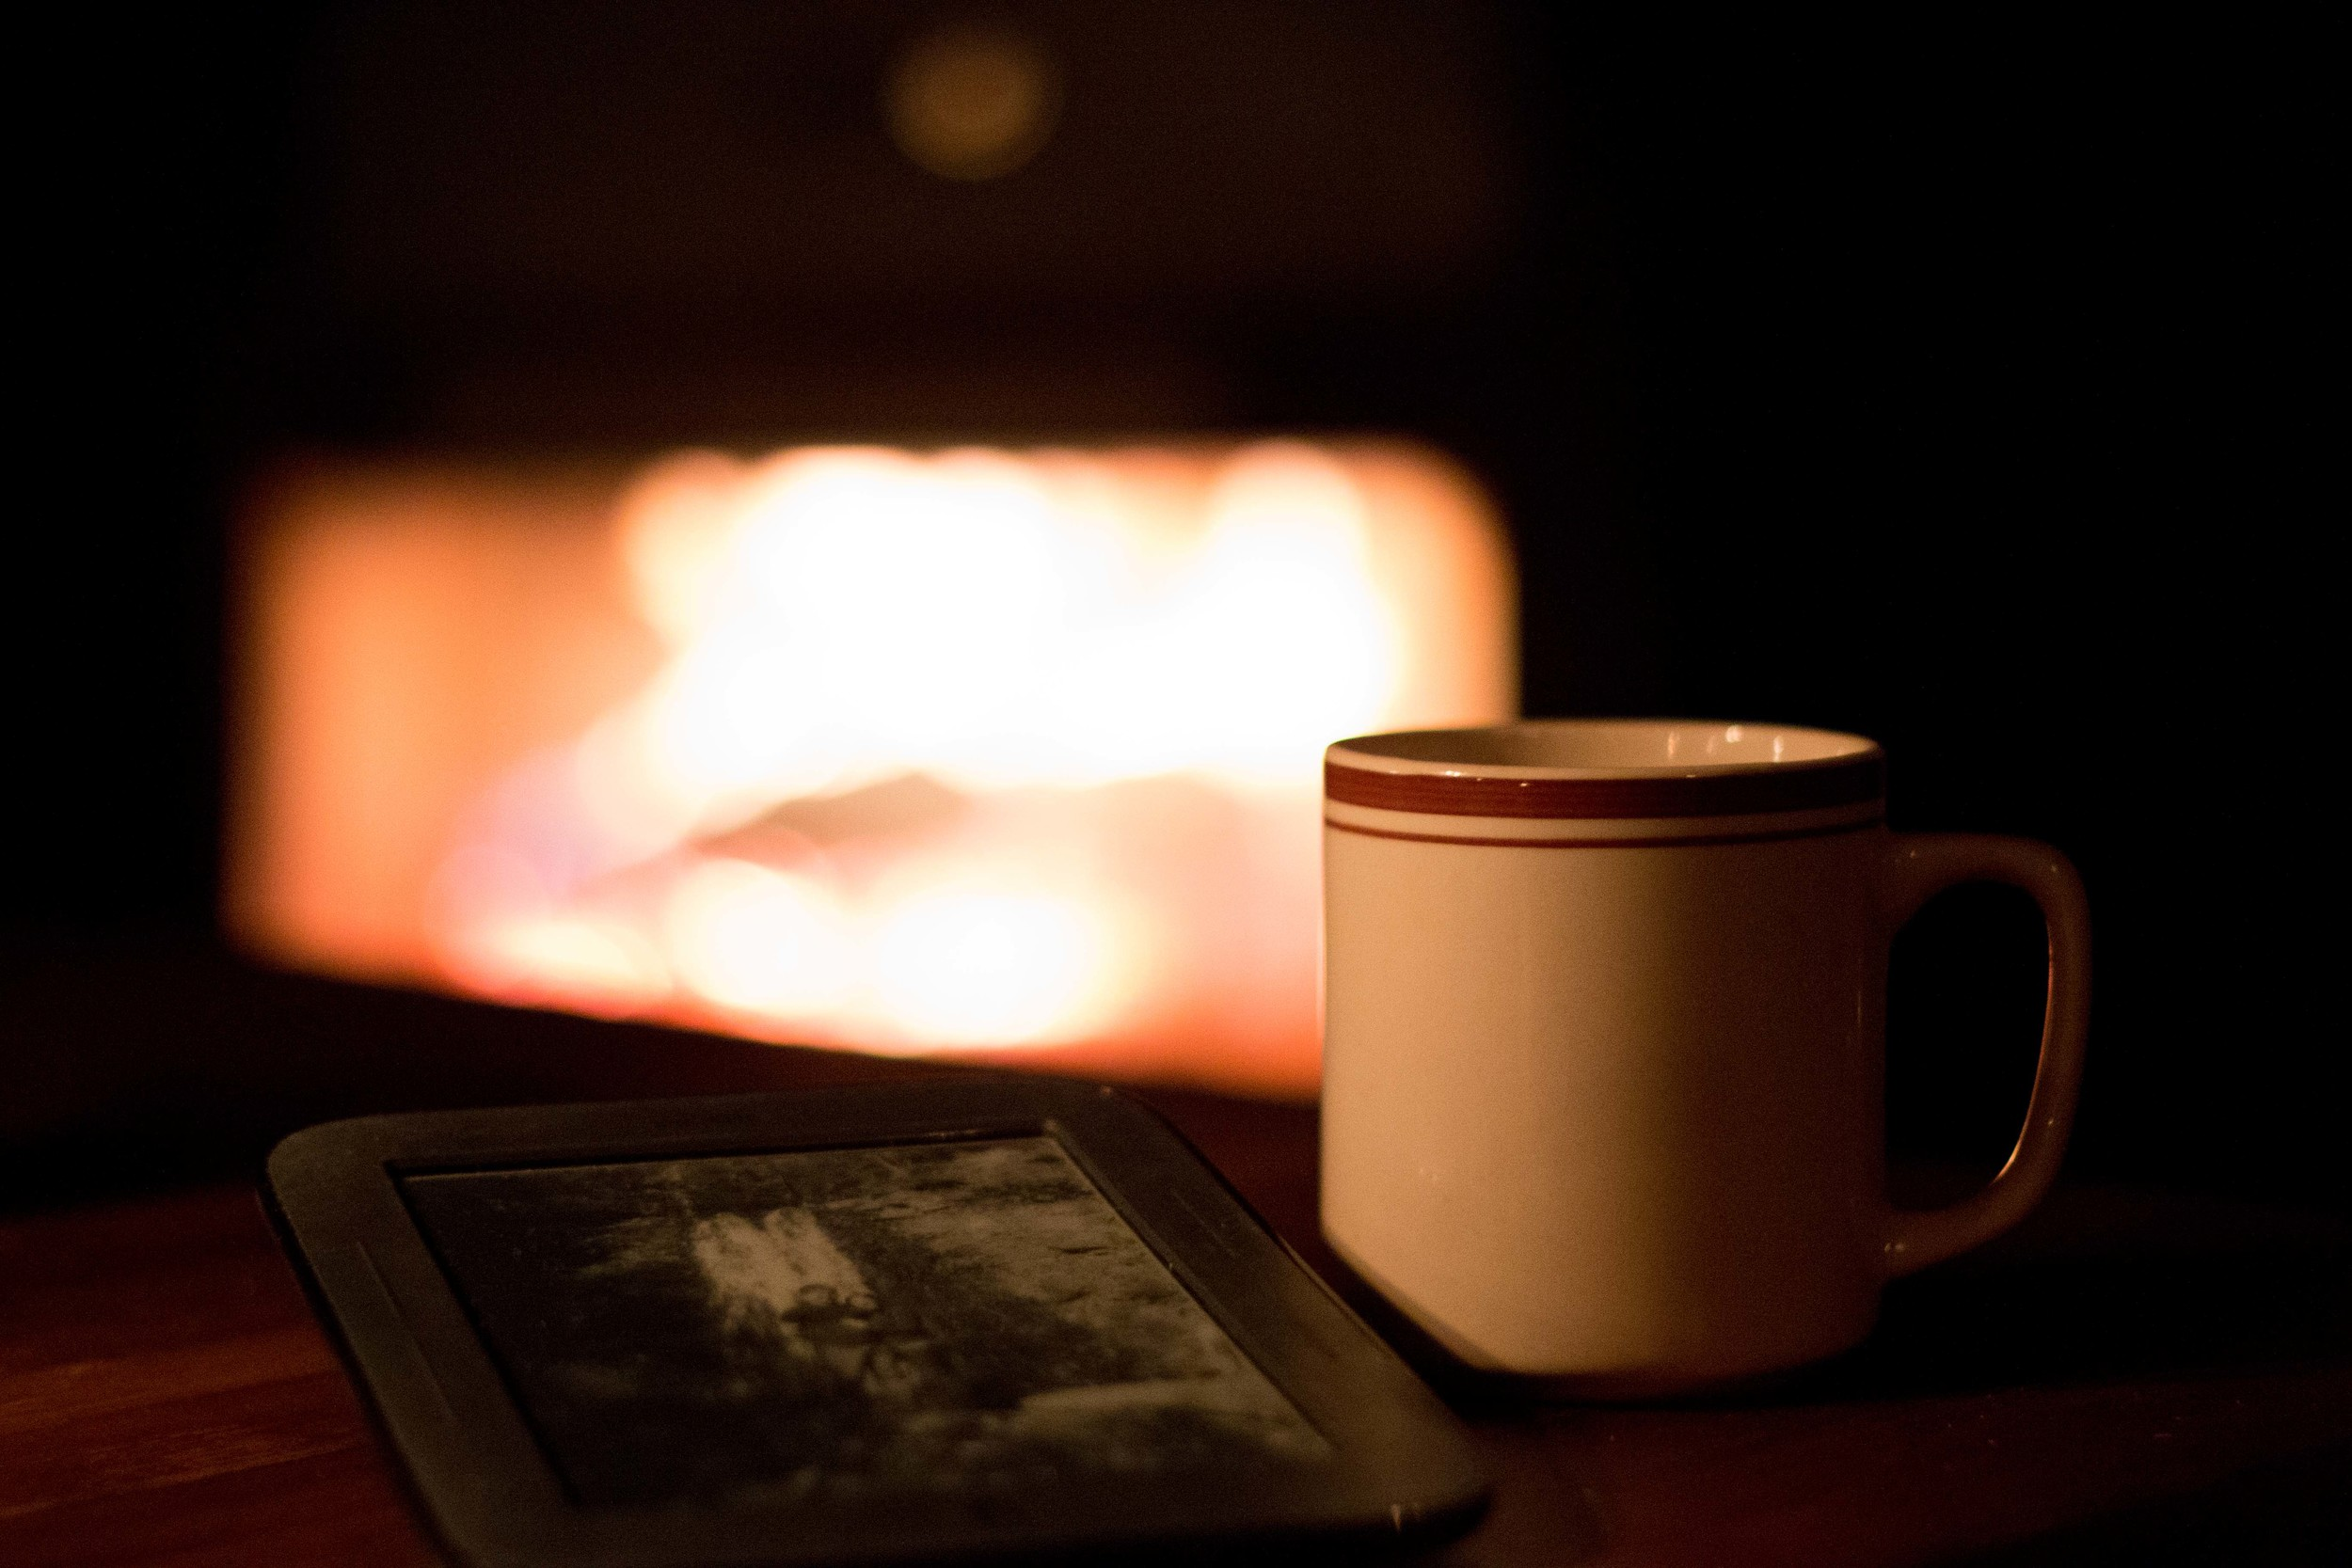 Relaxing with a hot cup of tea and readingmy Nook bycandlelight next tothe fire. #relaxing